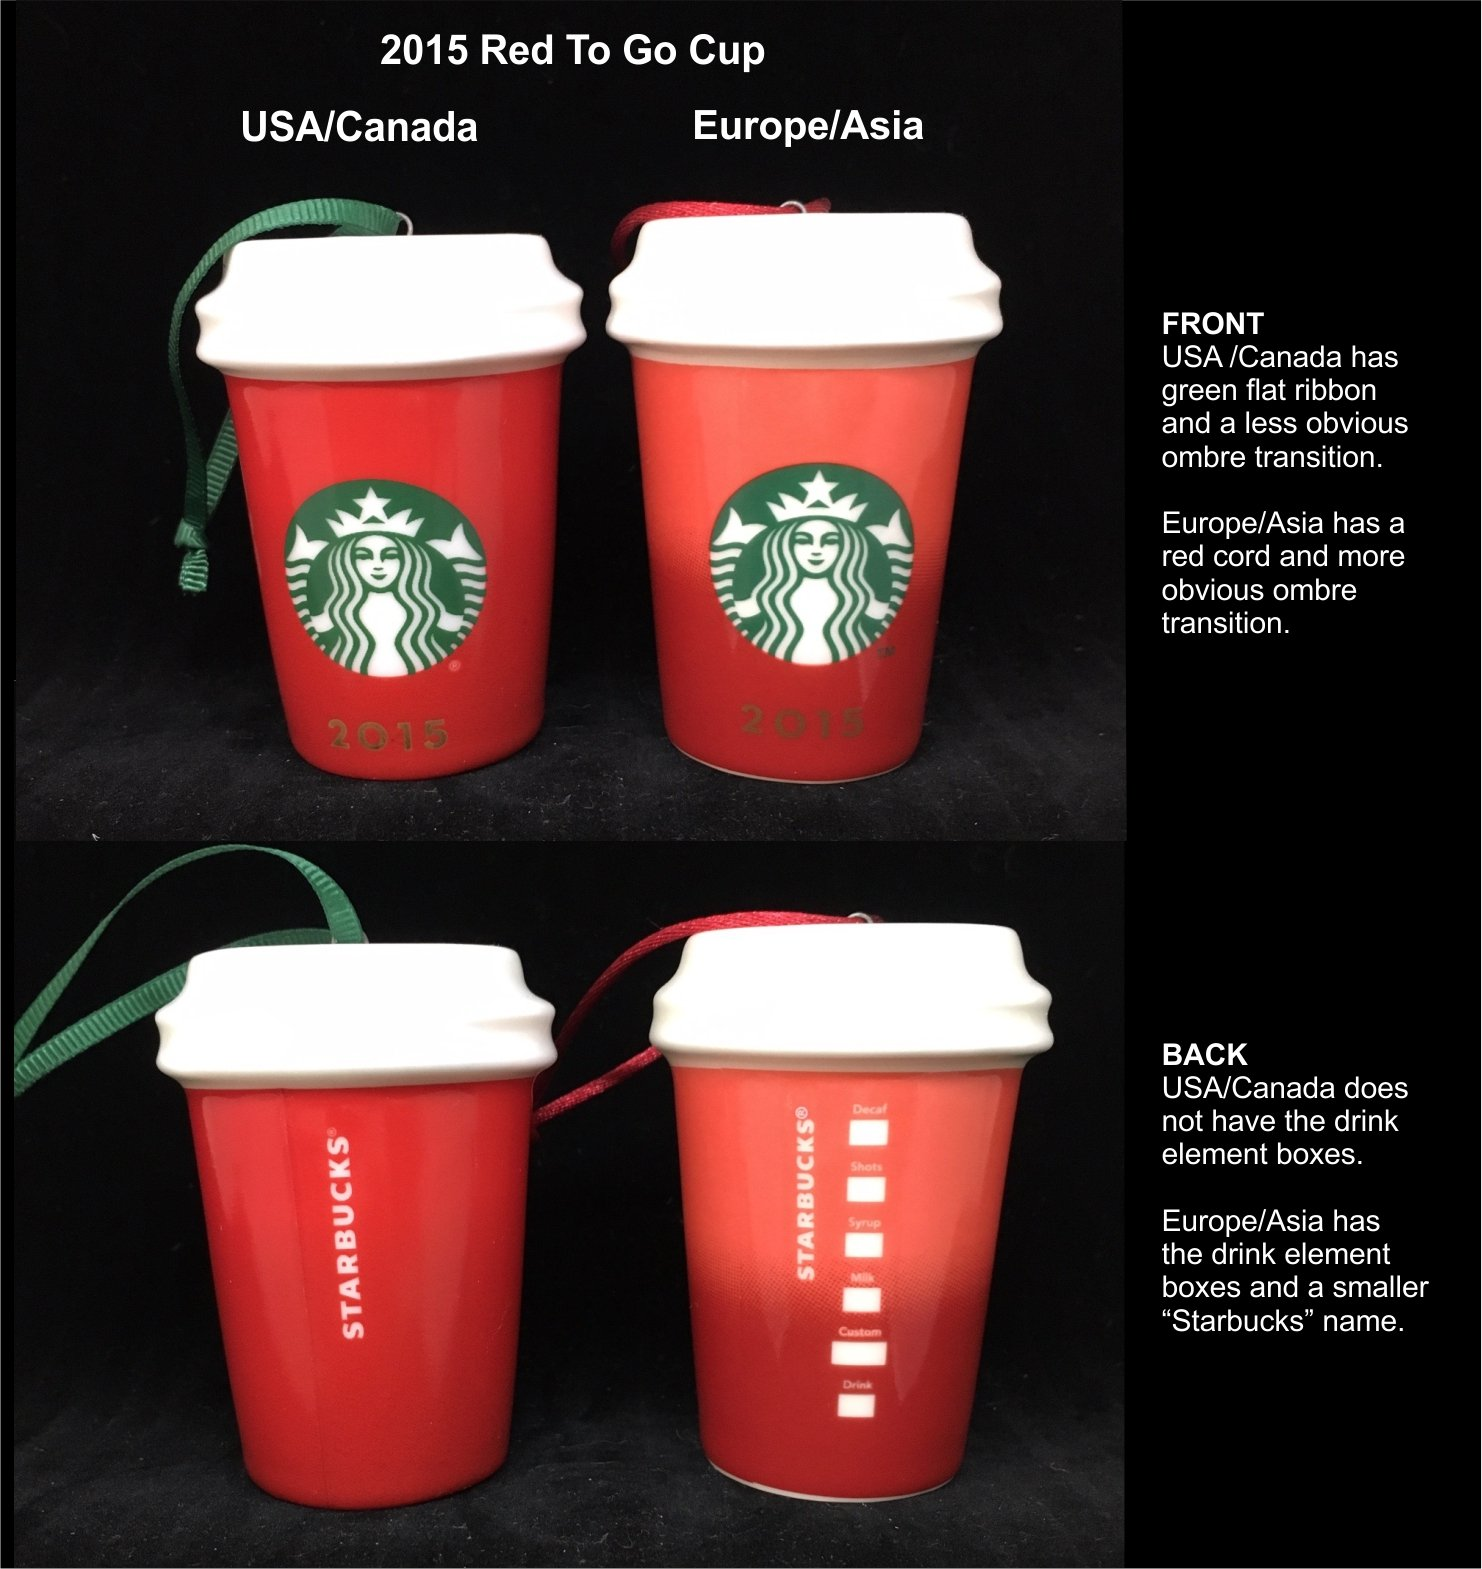 2015 Red To Go Cup Comparison